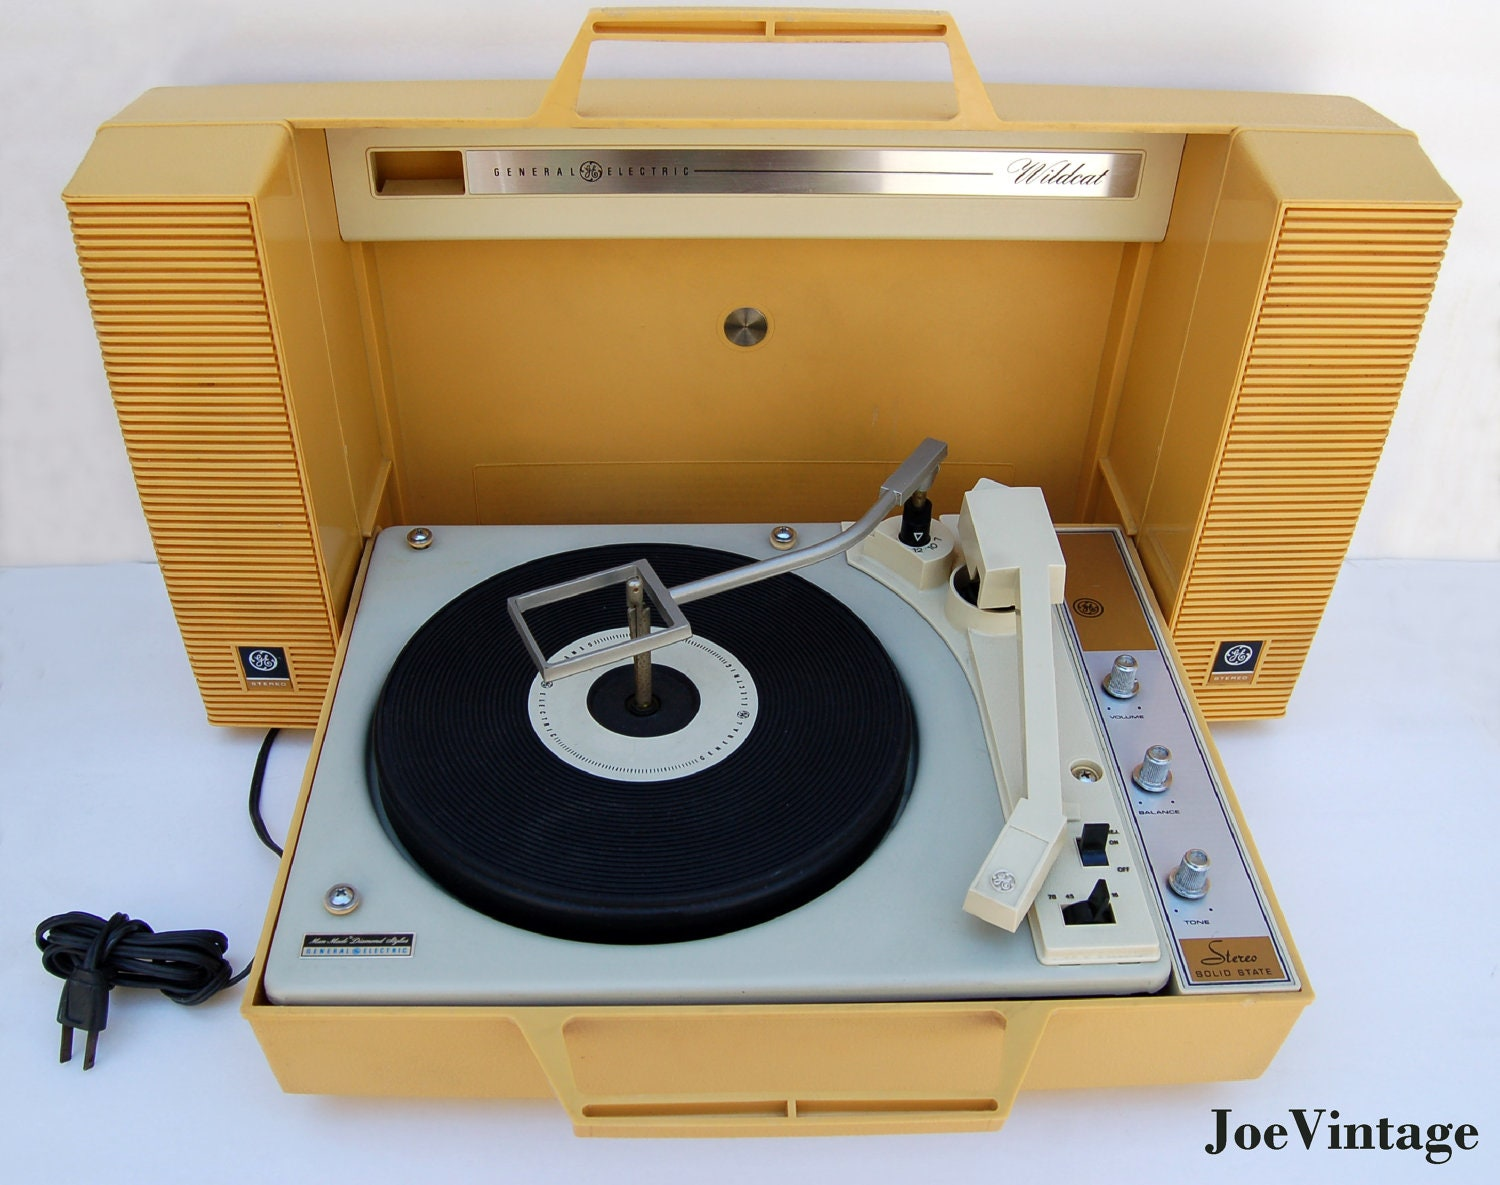 General Electric Wildcat Portable Record Player